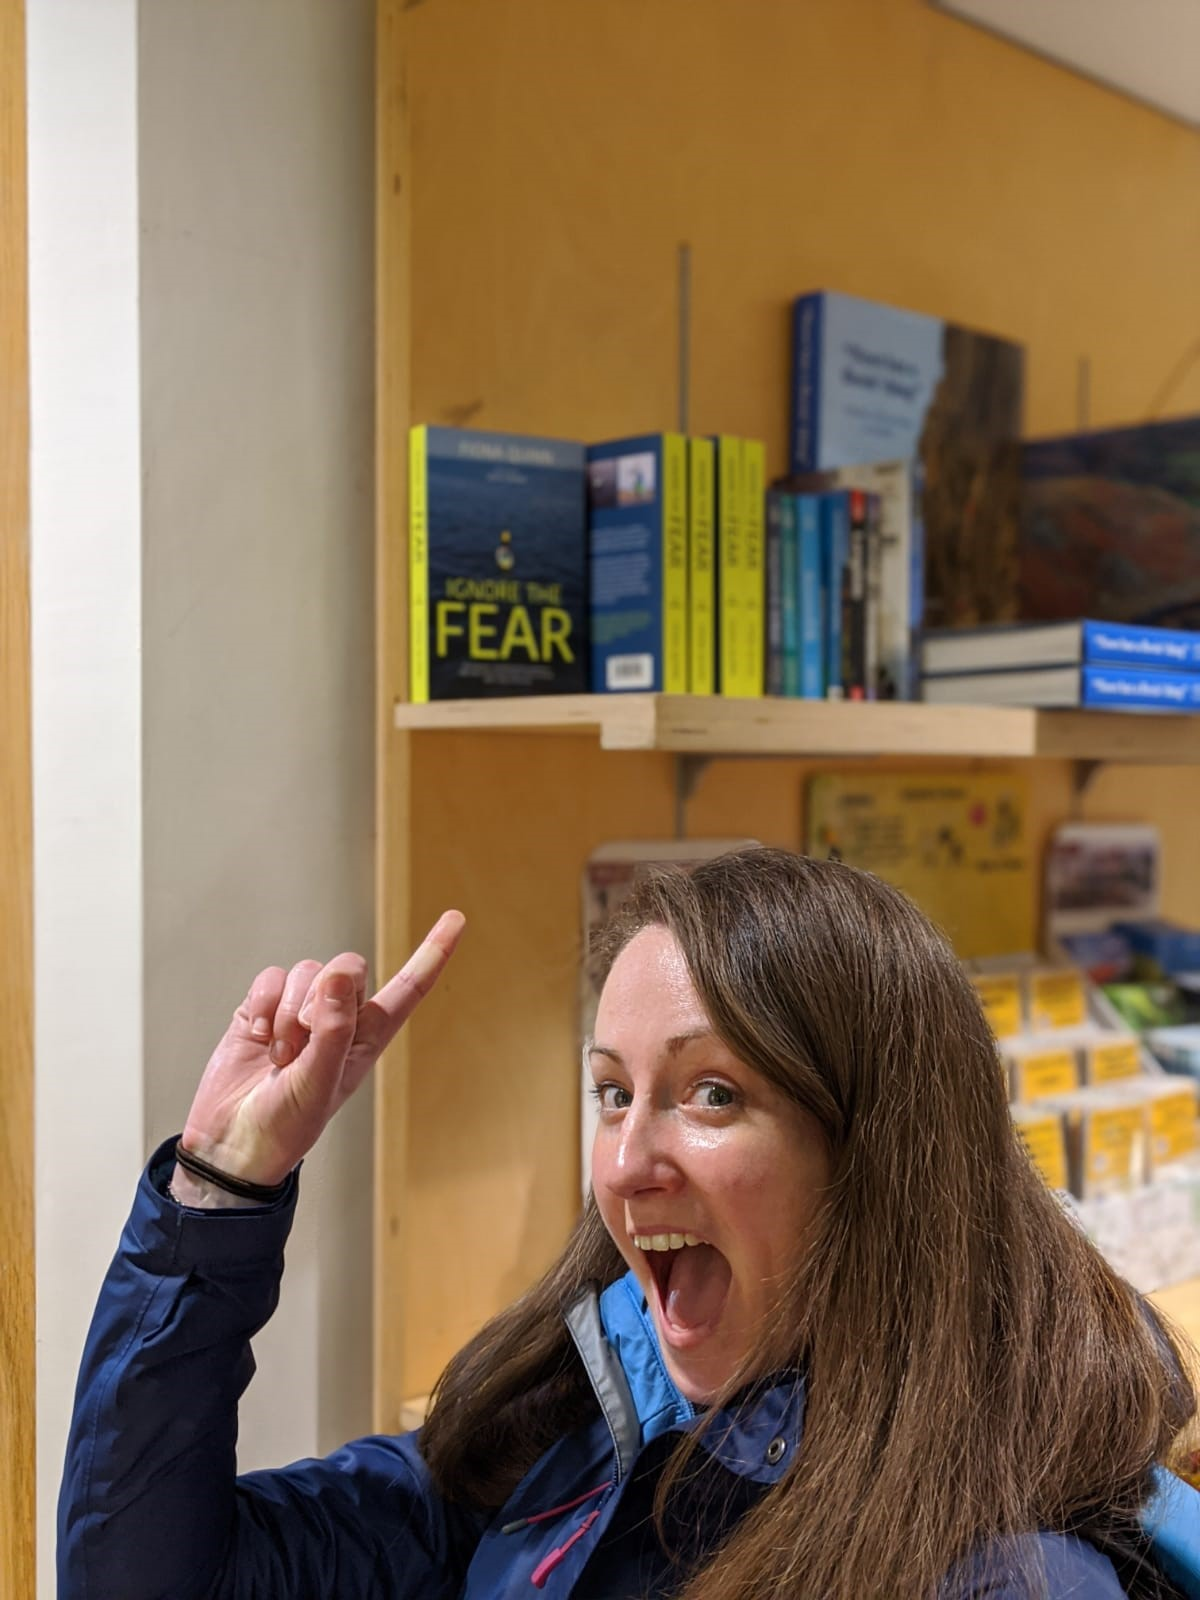 Fiona Quinn with her book 'Ignore the fear'